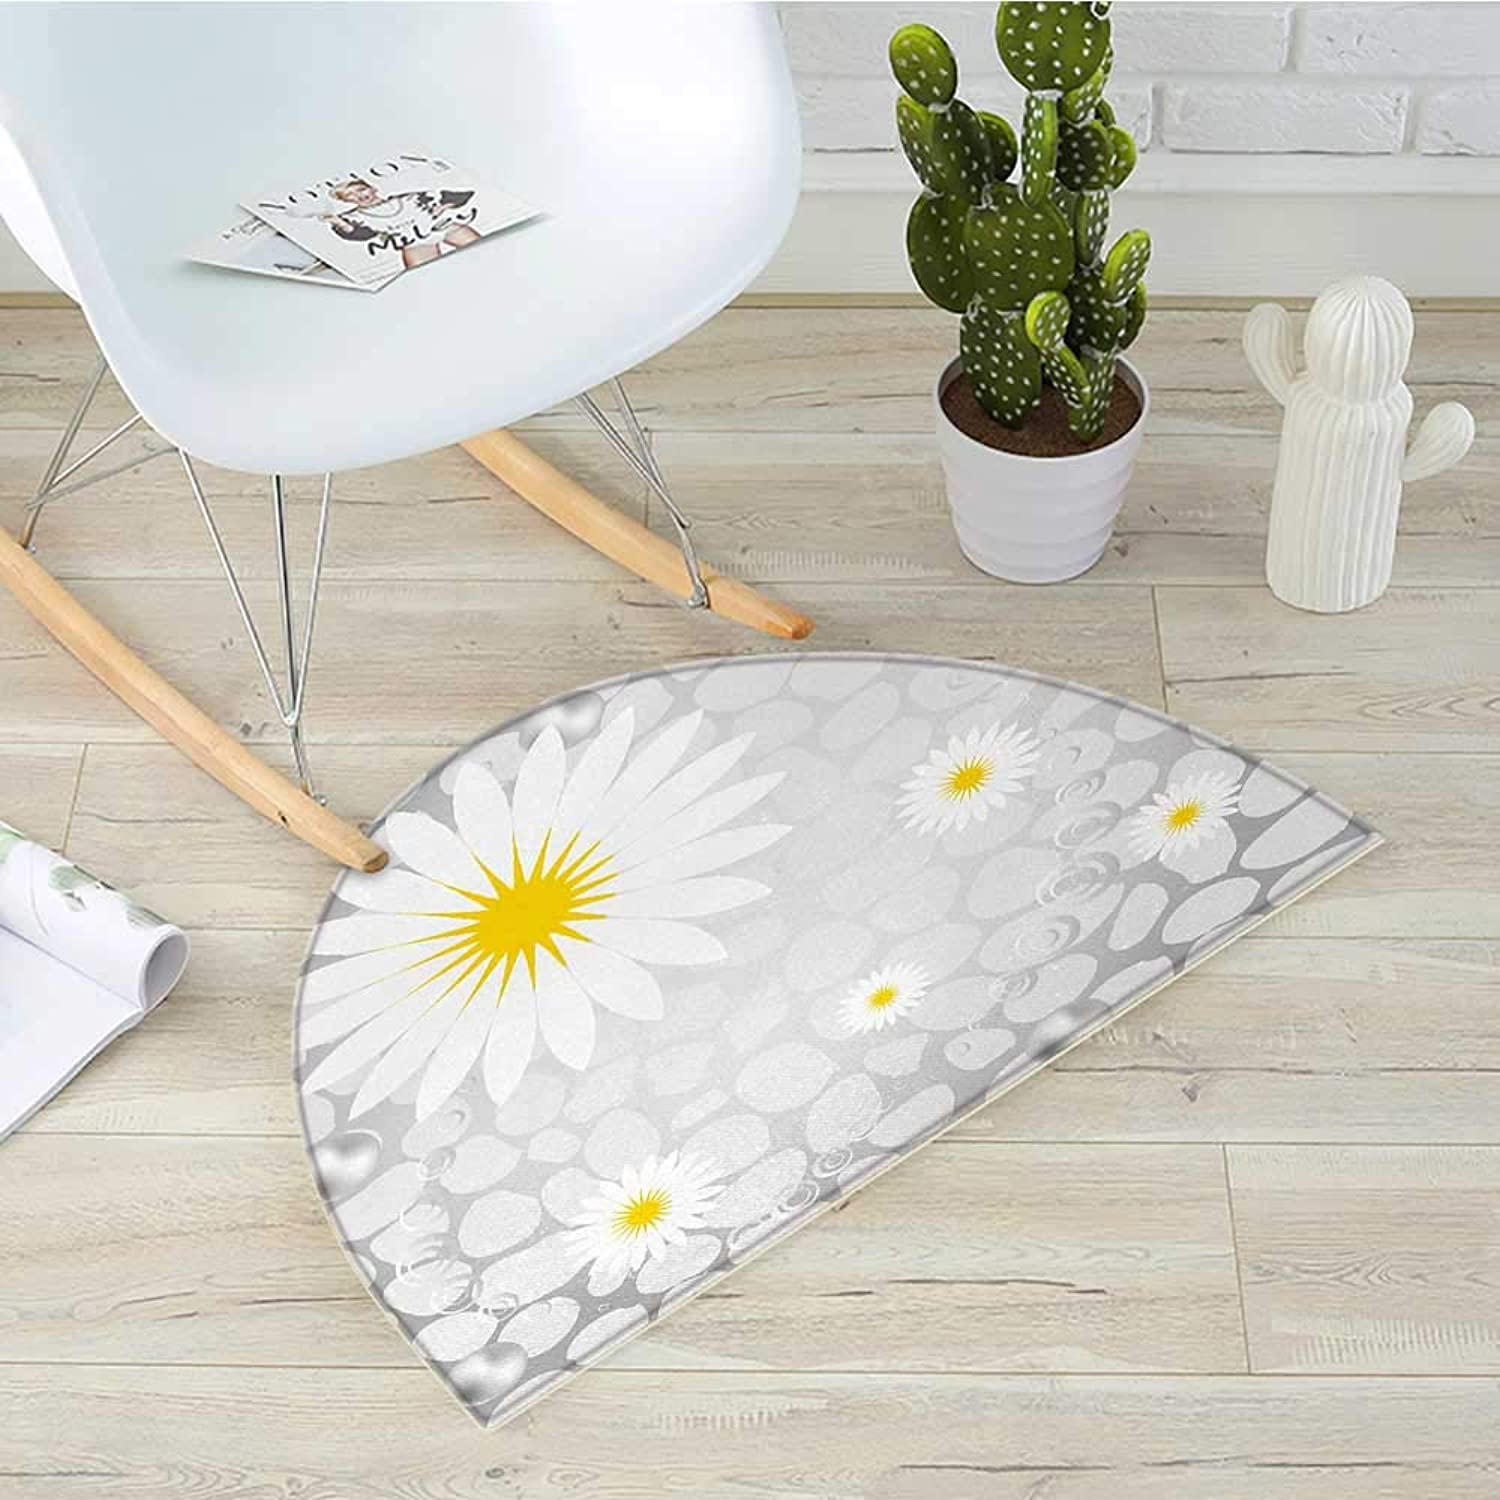 Grey and Yellow Semicircular CushionHawaiian Island Flowers on Abstract Animal Print Theme Backdrop Entry Door Mat H 39.3  xD 59  White and Light Grey